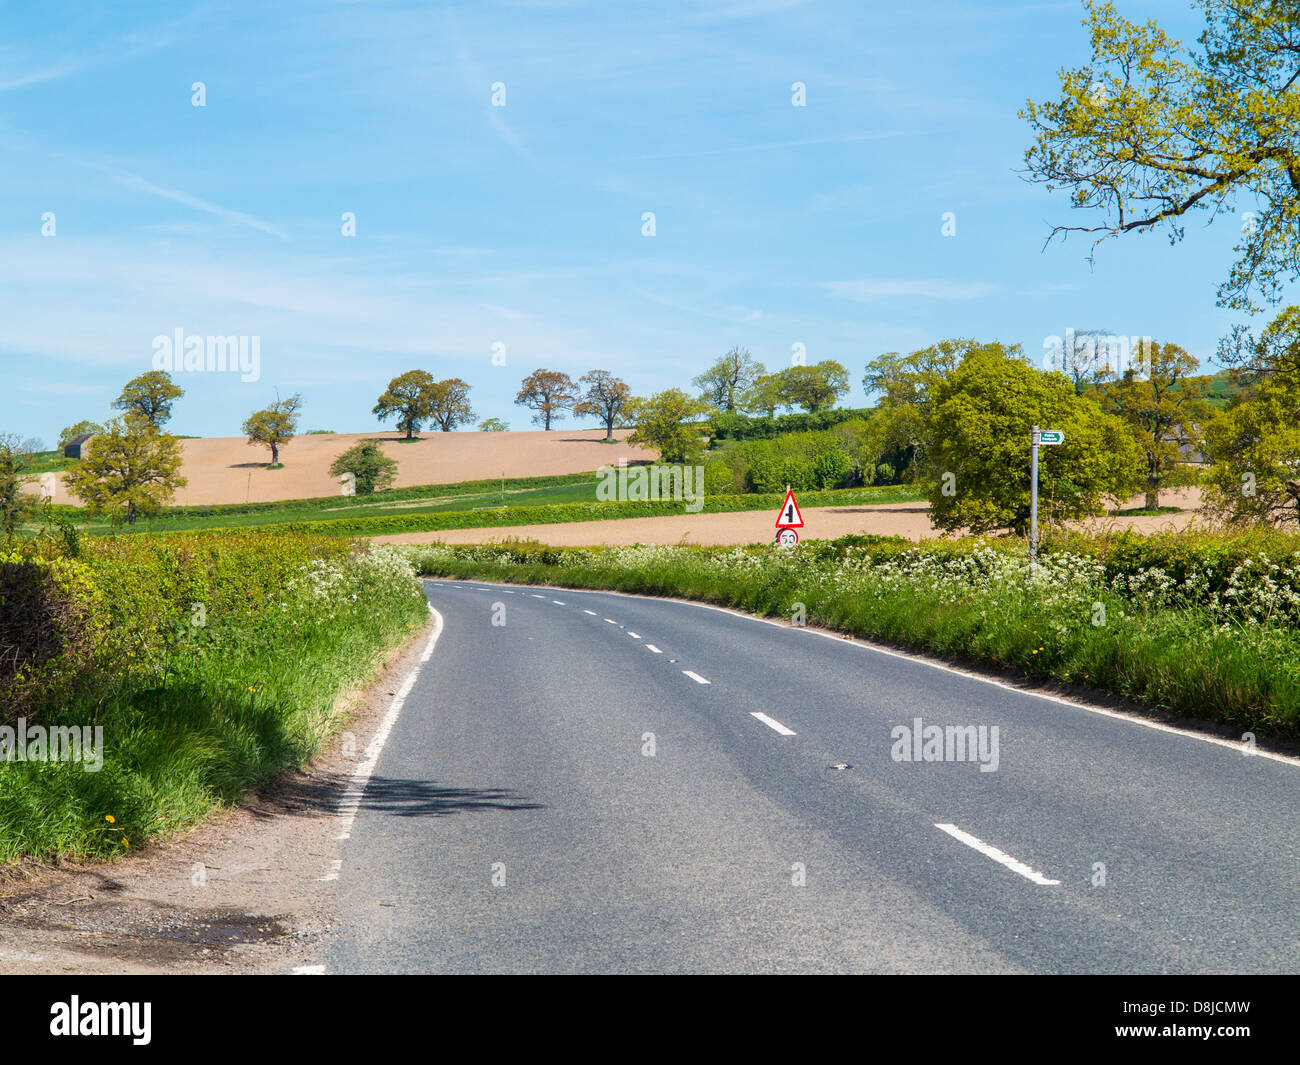 Winding country road through the Derbyshire countryside near Wirksworth, England. - Stock Image